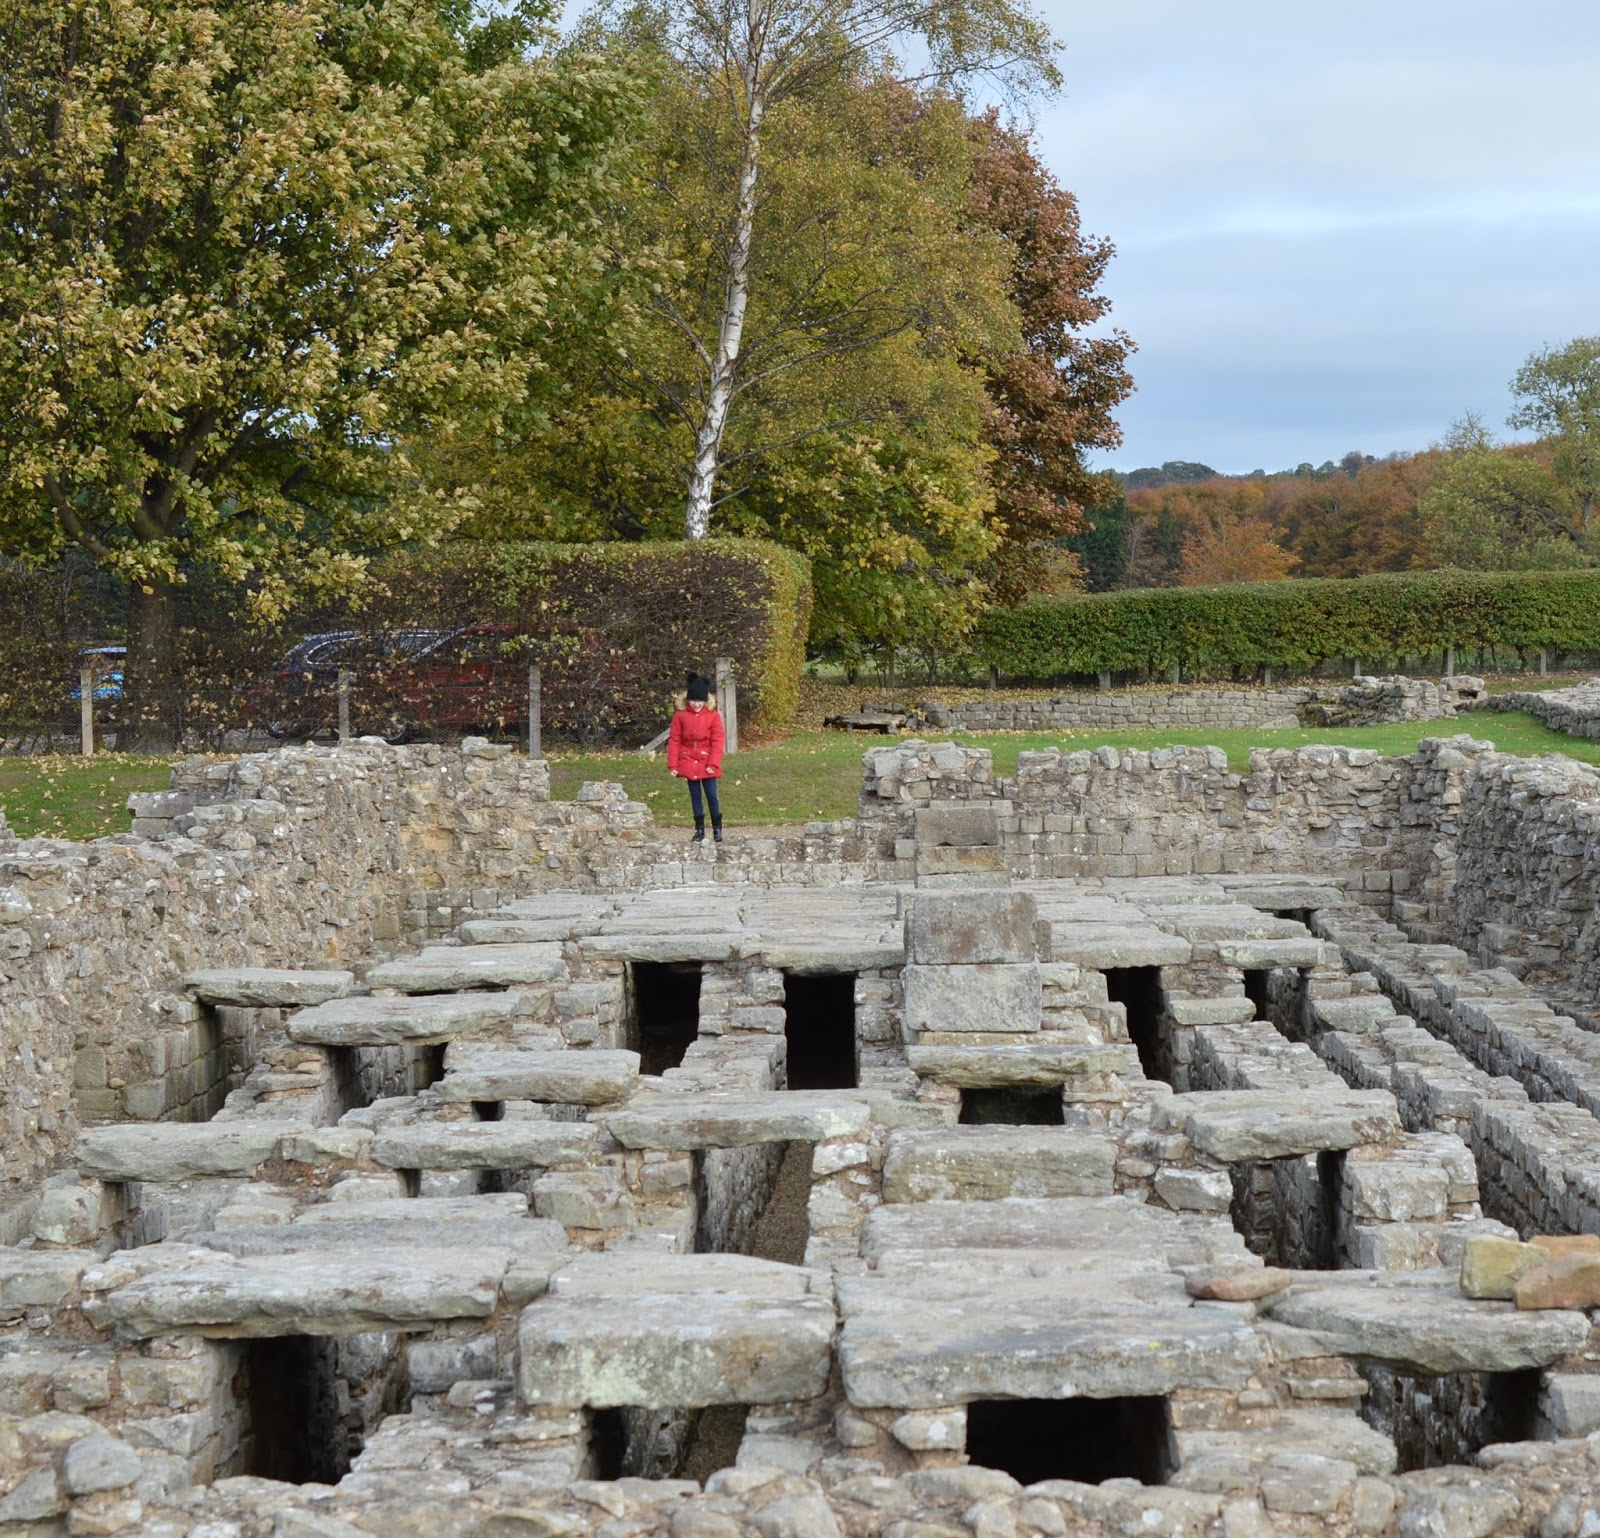 10 Reasons to Stay at Matfen Hall in Northumberland with Kids  - Corbridge Roman Town